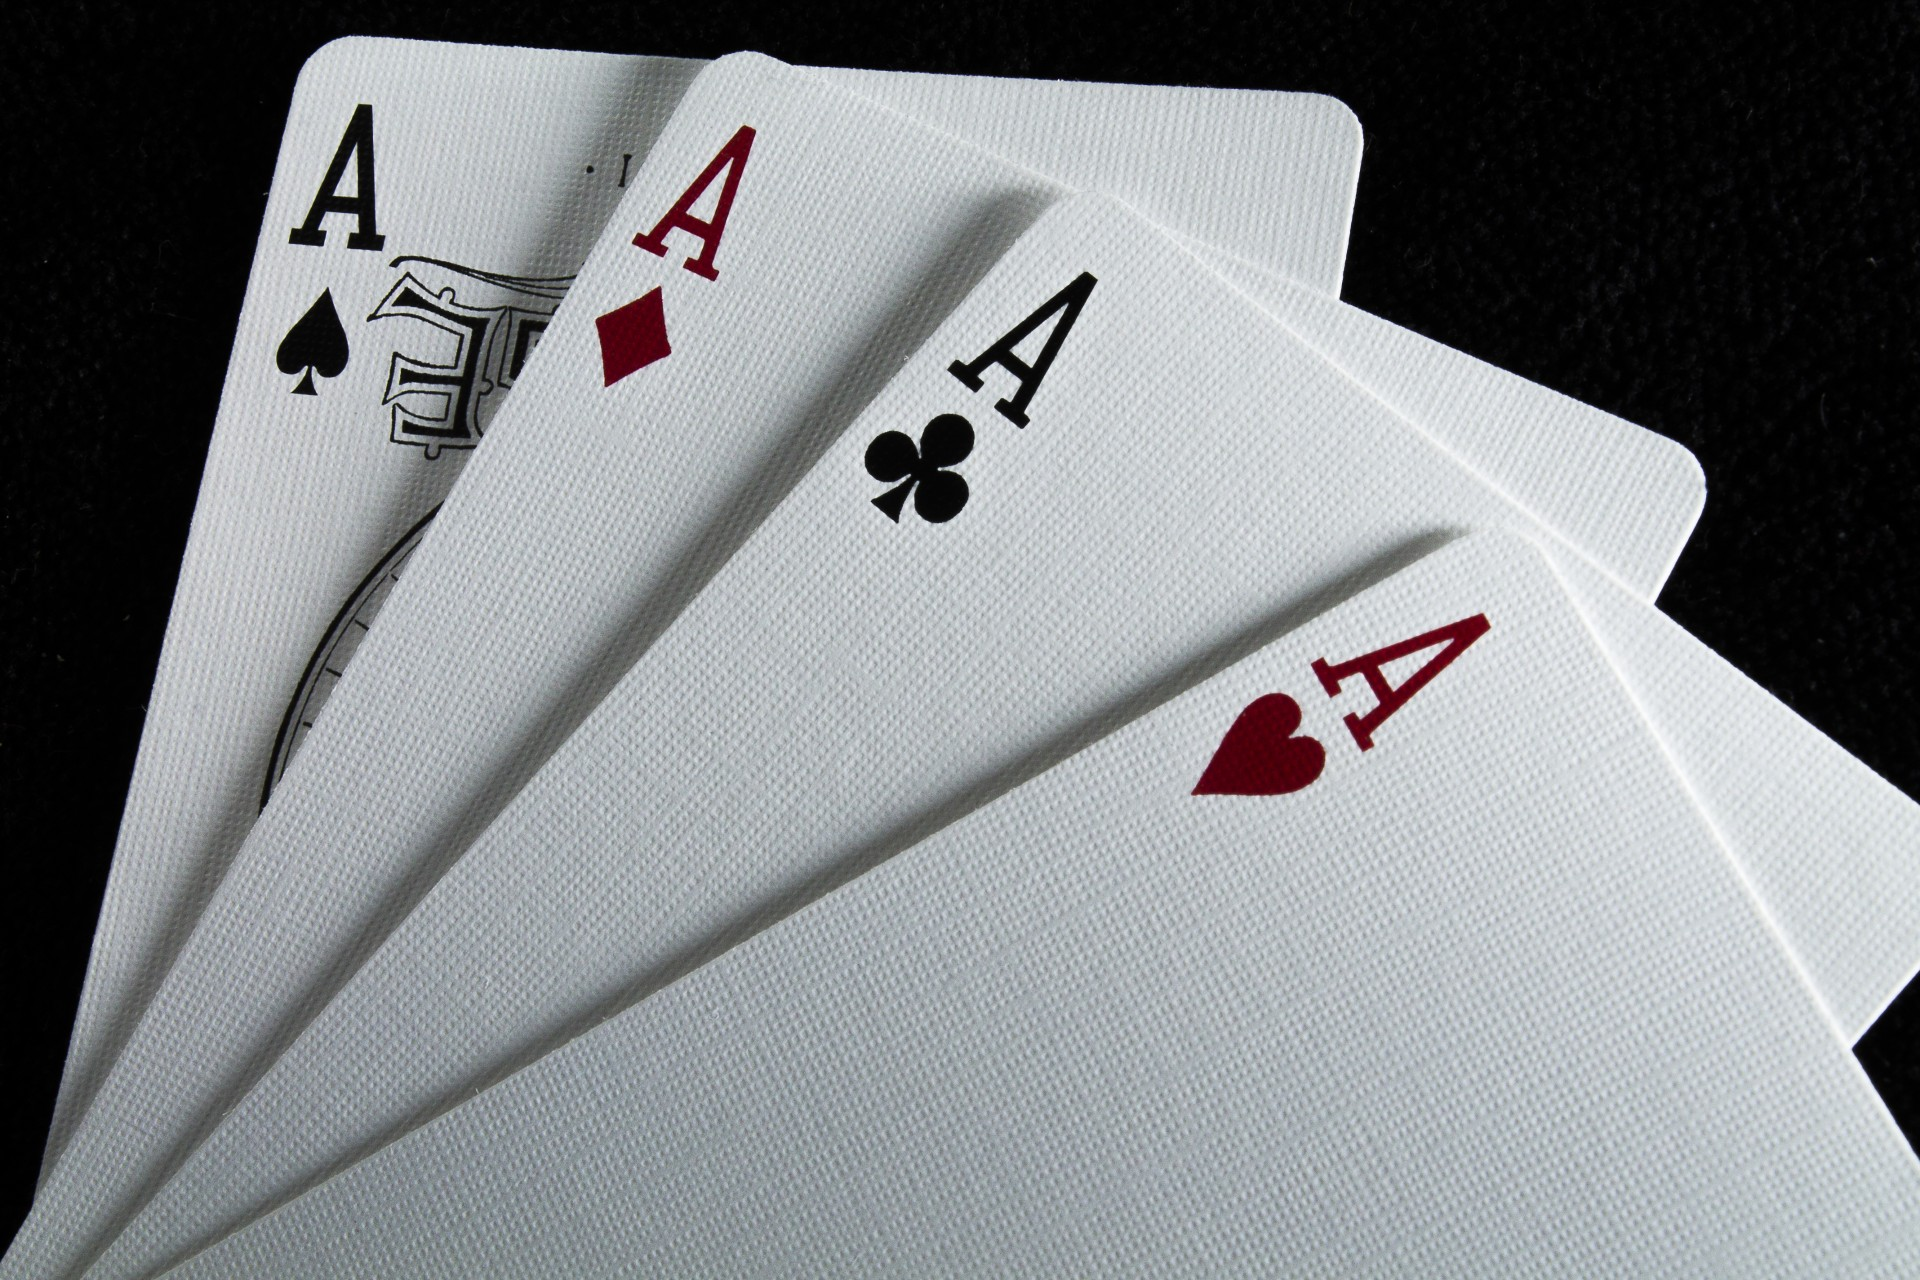 Magic 3d Wallpapers Free Download Four Aces Of Cards Free Stock Photo Public Domain Pictures